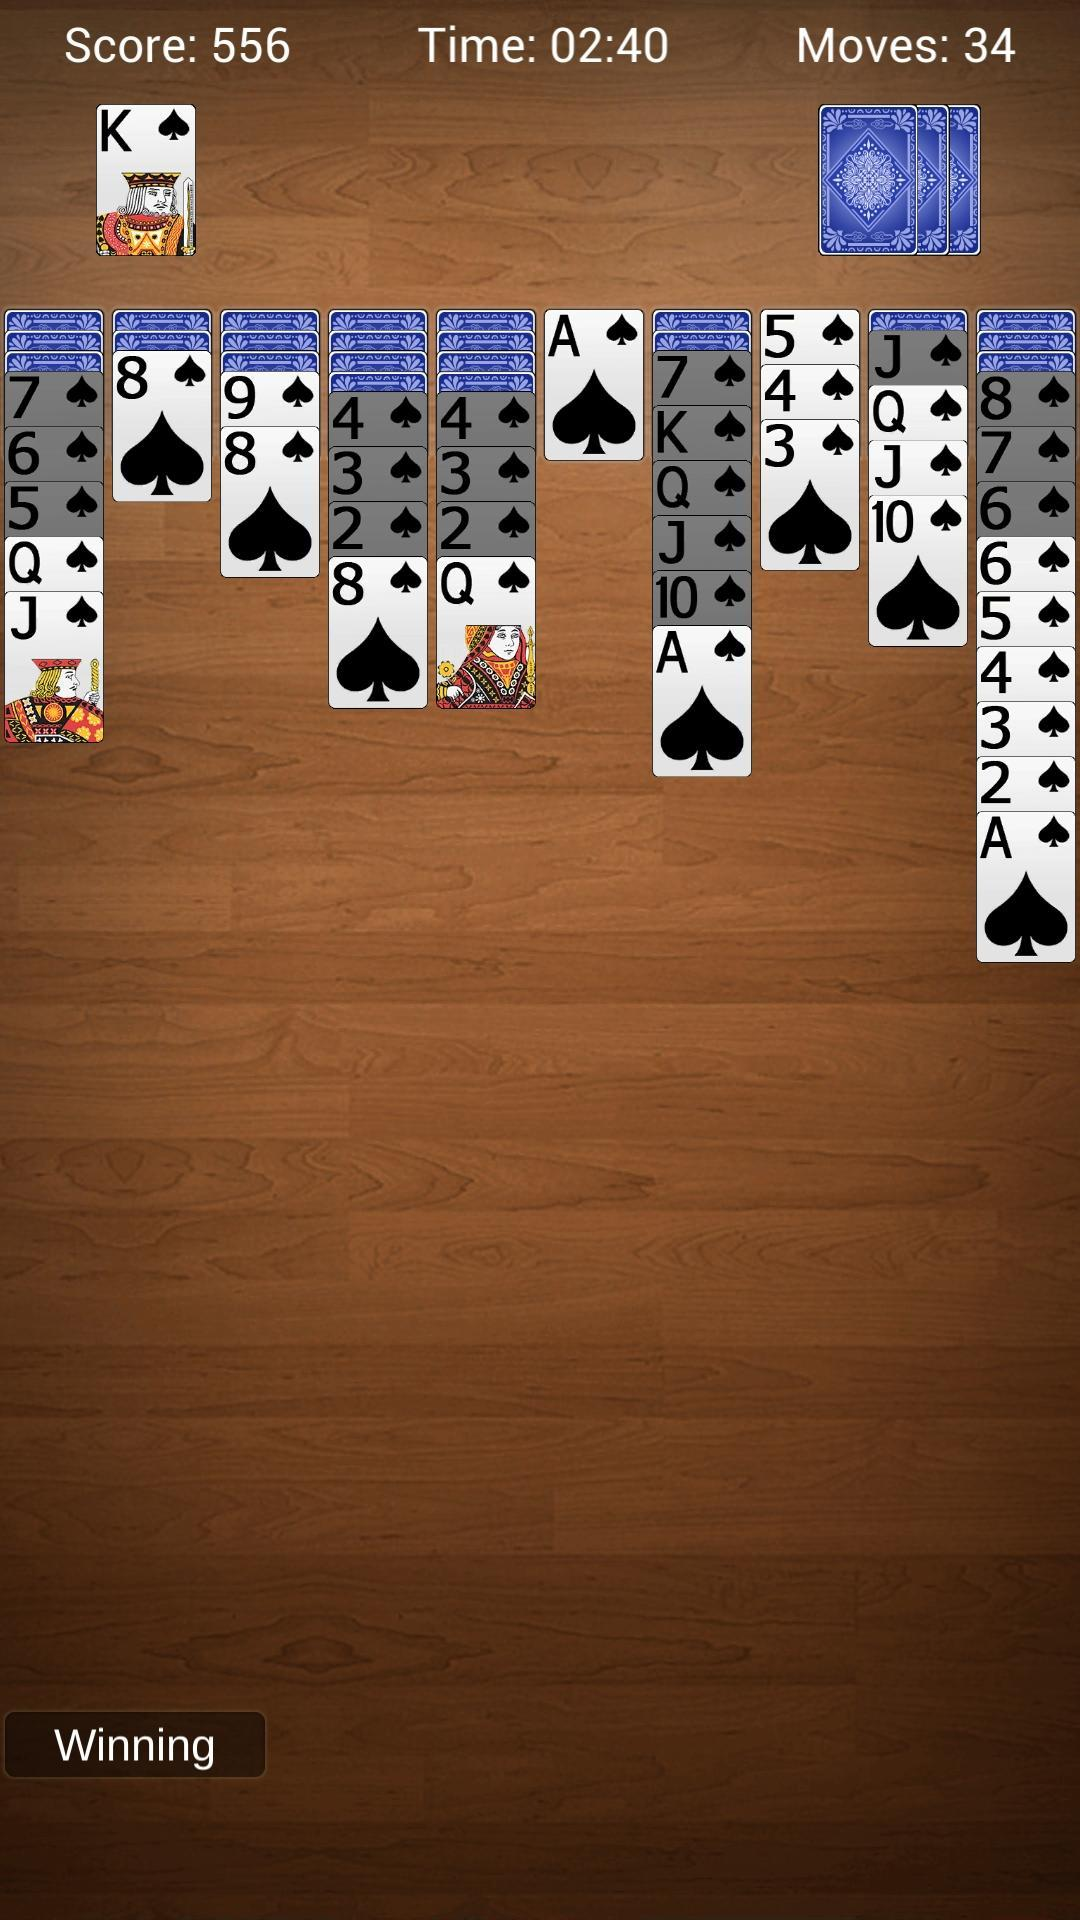 Spider Solitaire - Best Classic Card Games 1.6 Screenshot 10